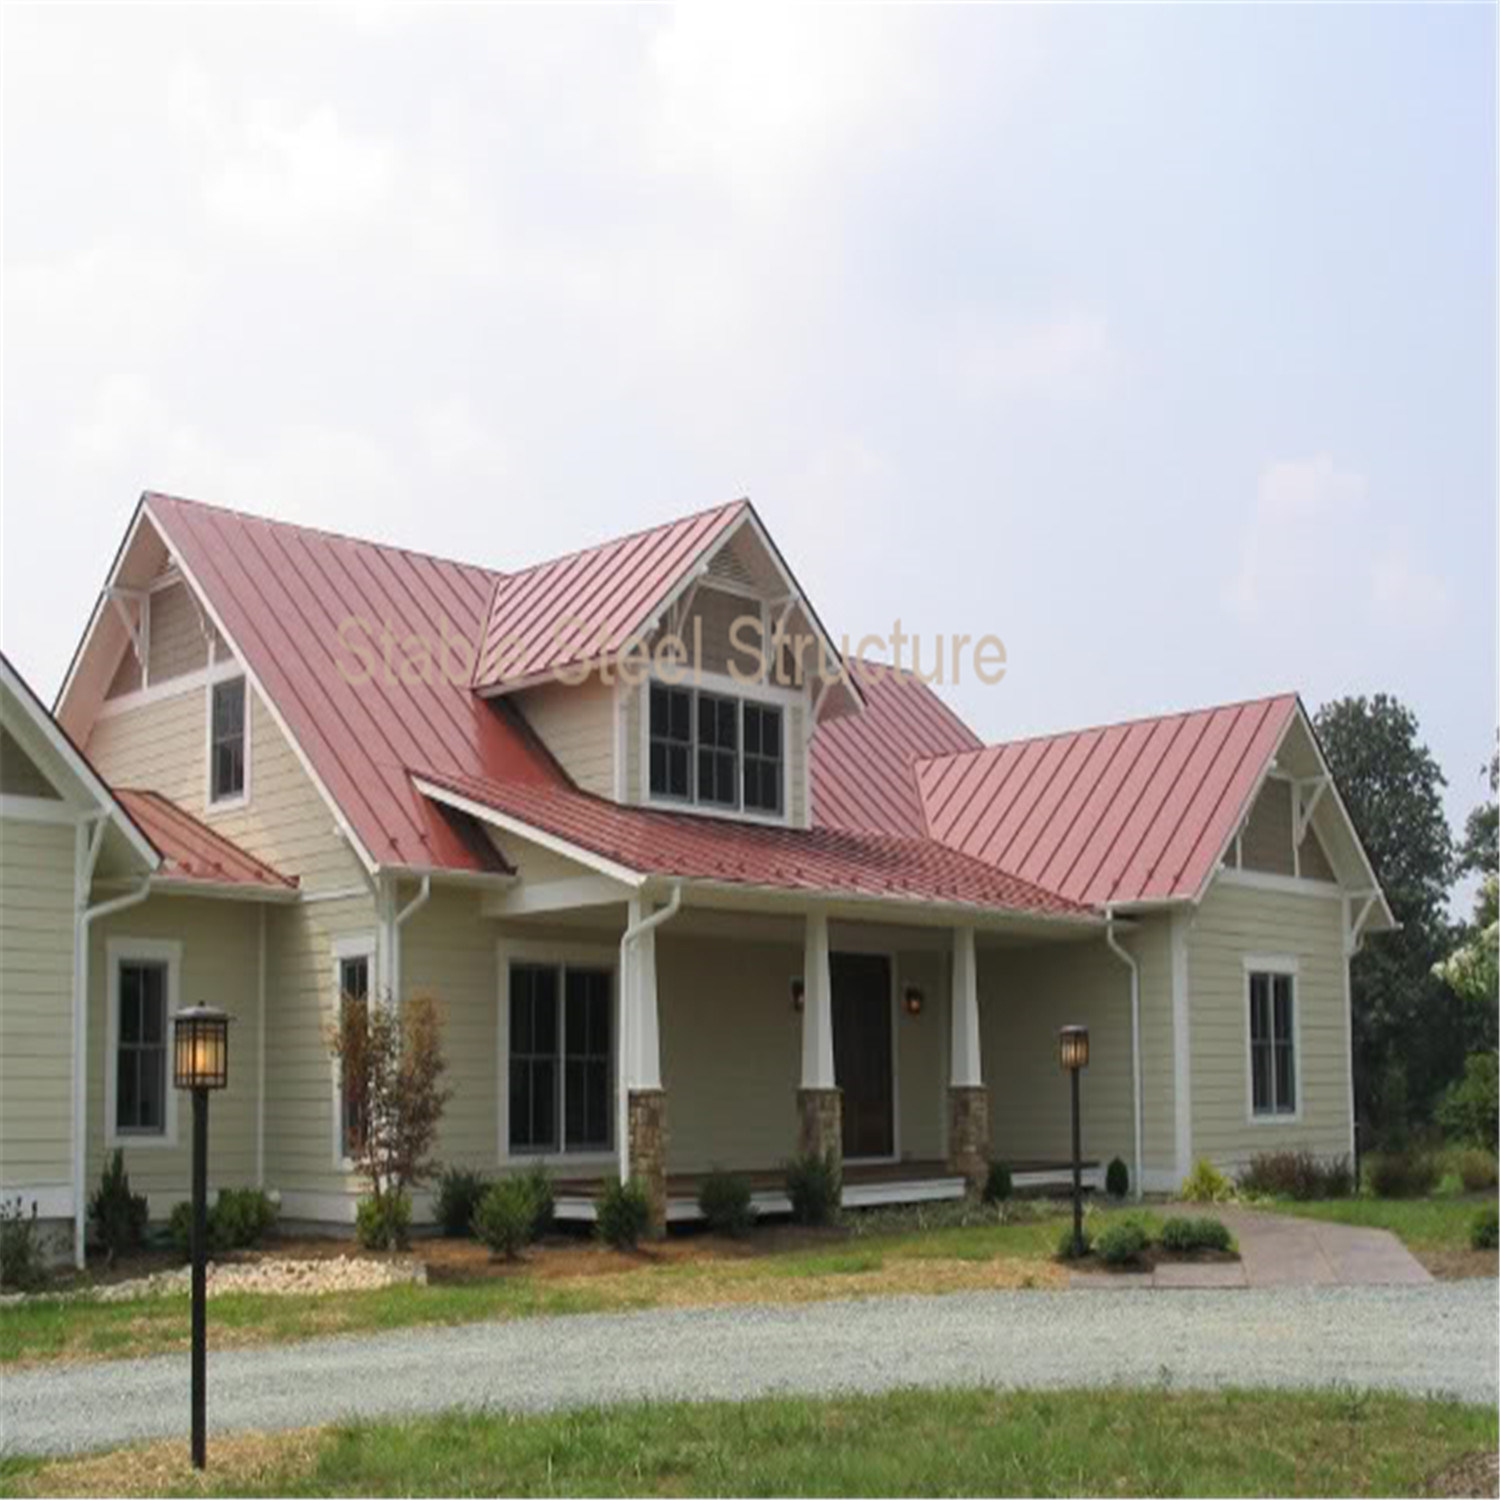 China Prefab Steel Residential Buildings With Cheap Price China Steel Buildings Prefab Buildings